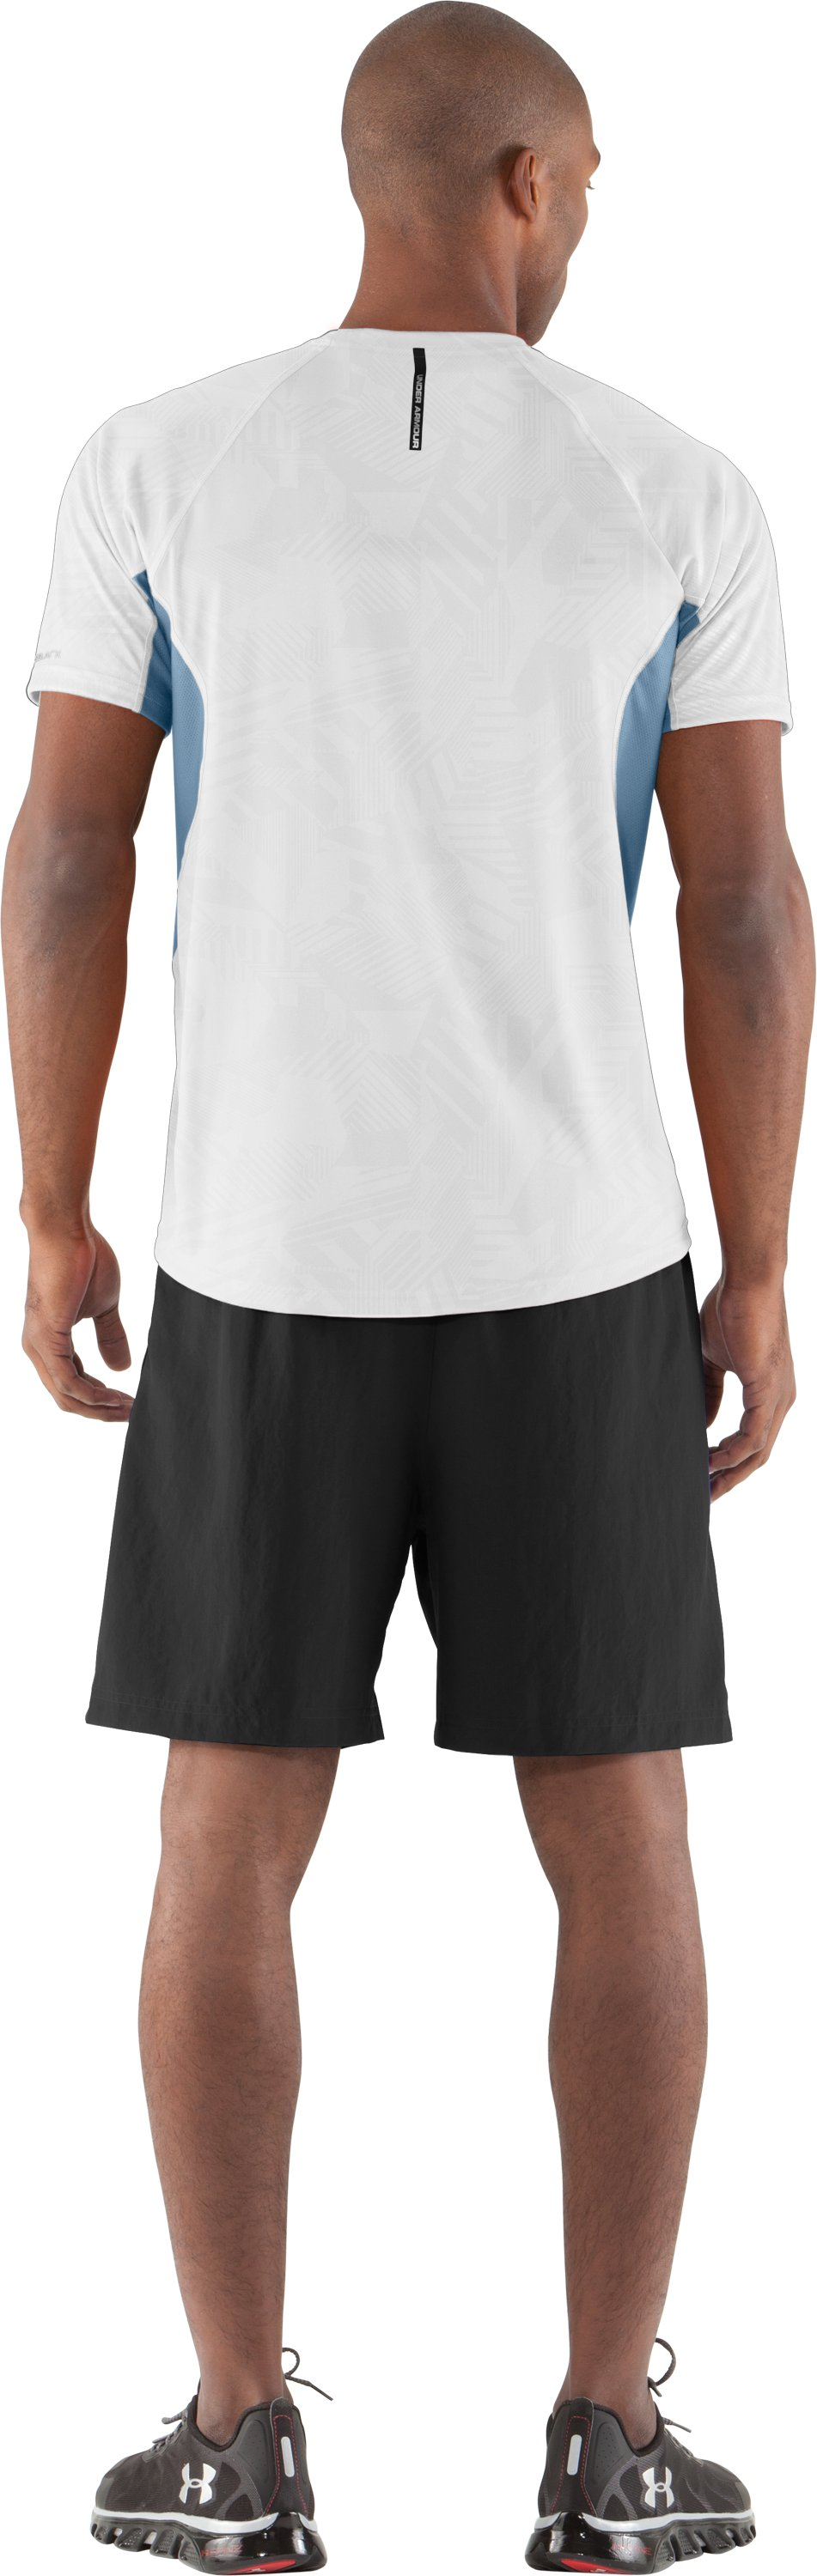 Men's coldblack® Engage Run T-Shirt, White, Back